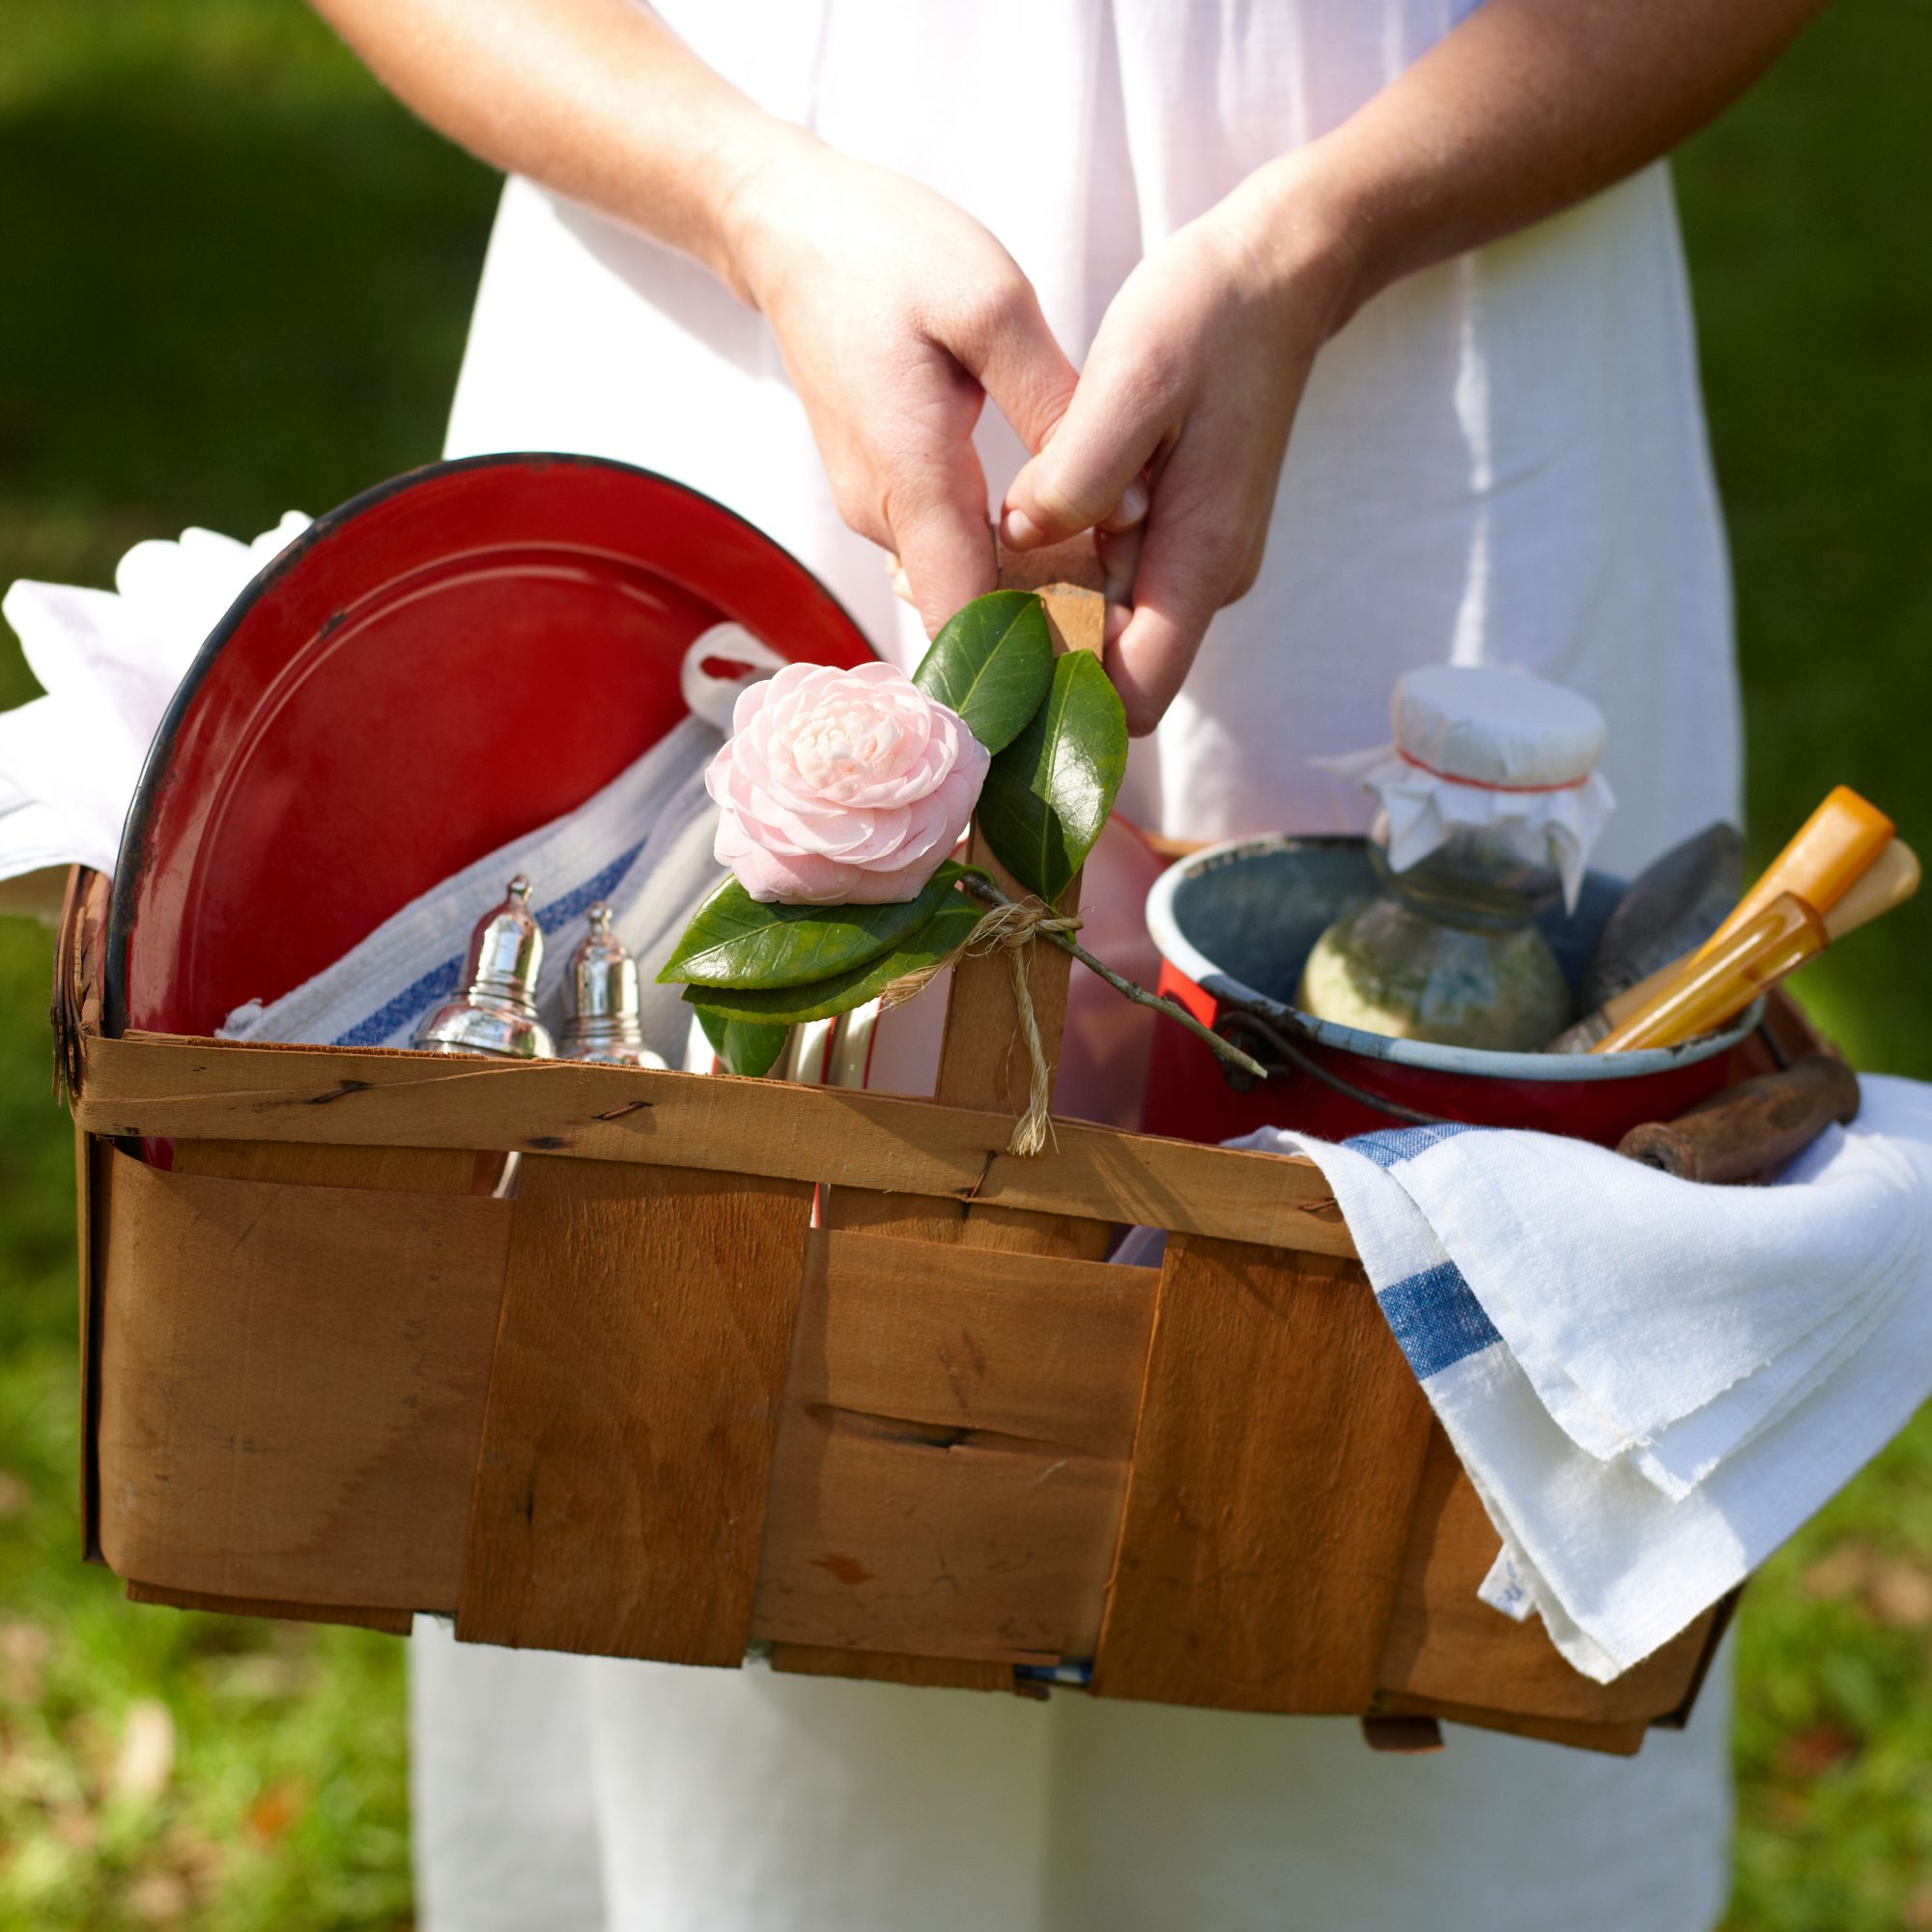 Woman Holding Packed Picnic Basket